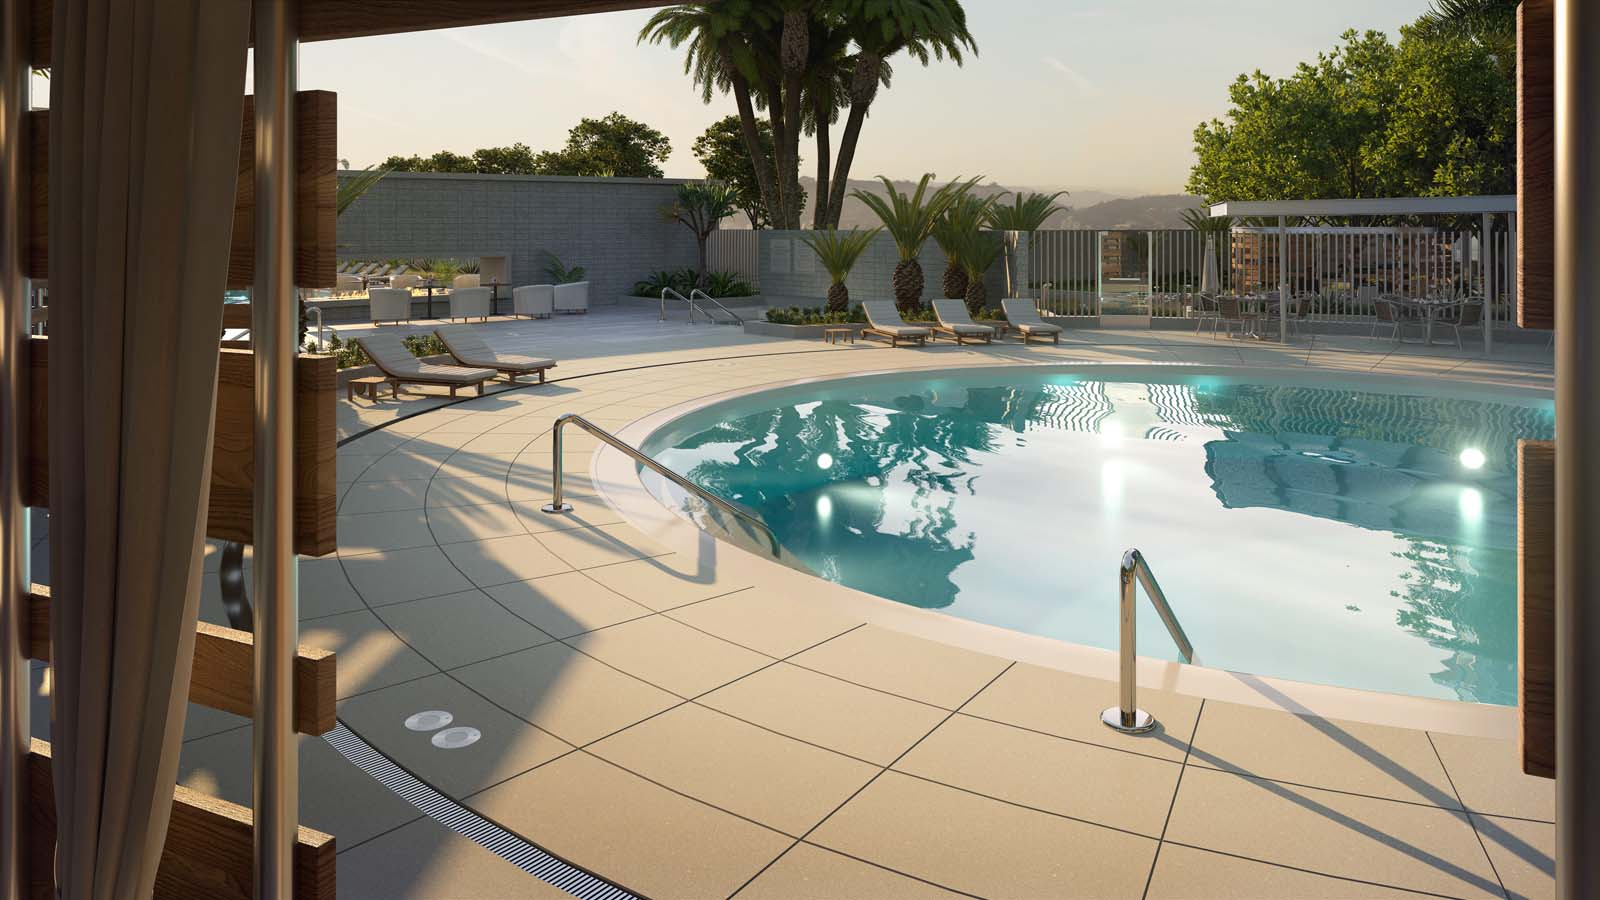 Circa Los Angeles outdoor swimming pool with cabana